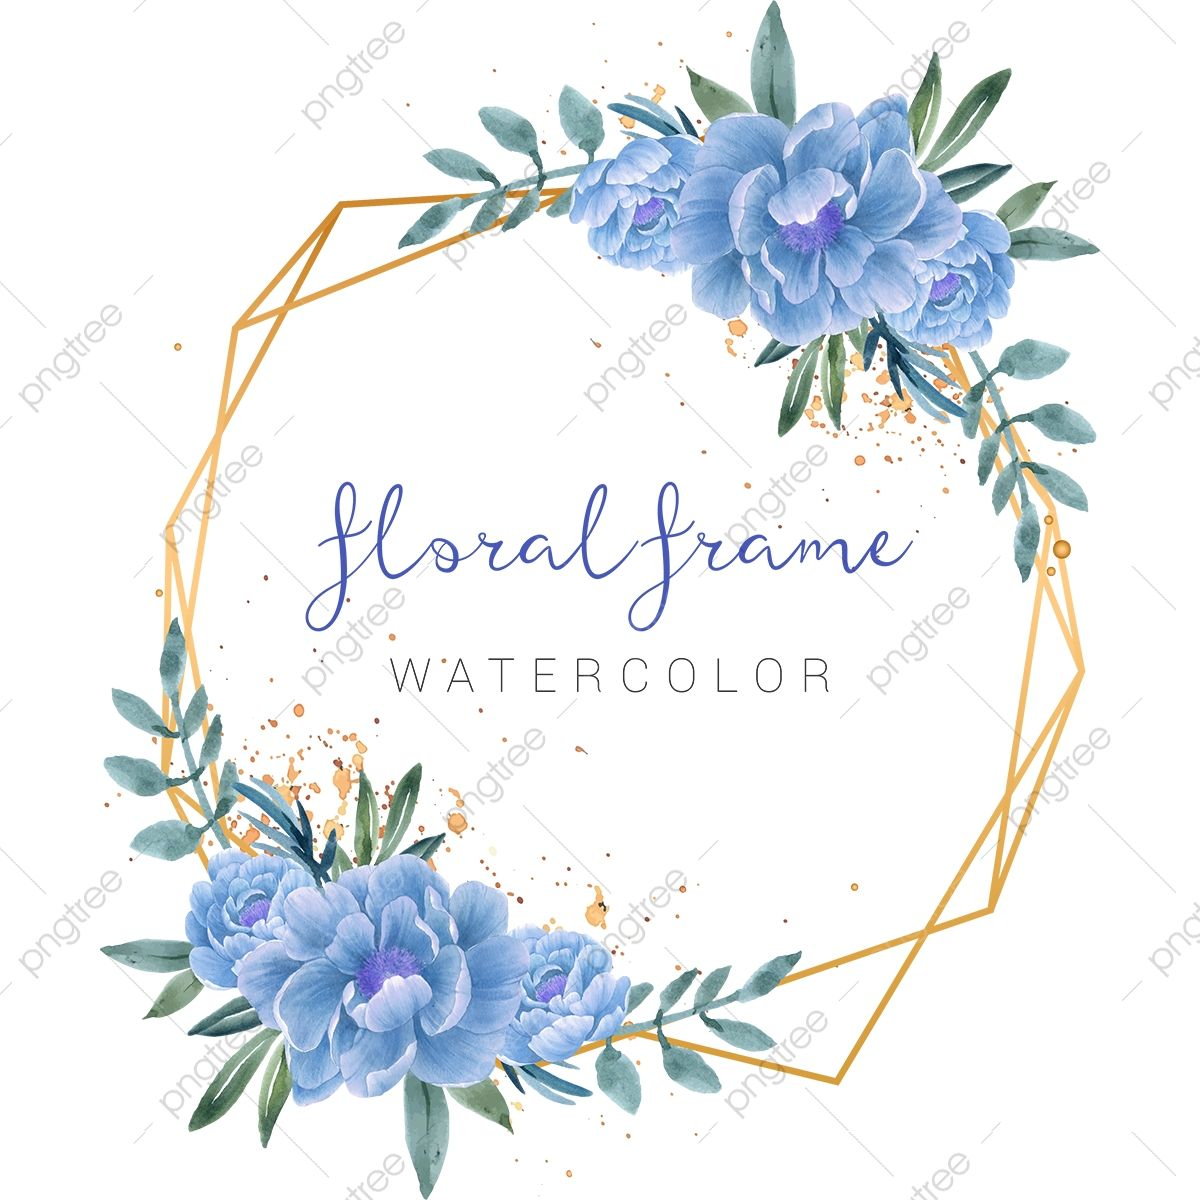 Elegant Gold Frame Watercolor Blue Flowers Illustration Watercolor Clipart Creative Wedding Png And Vector With Transparent Background For Free Download Flower Illustration Watercolor Flower Vector Flower Frame